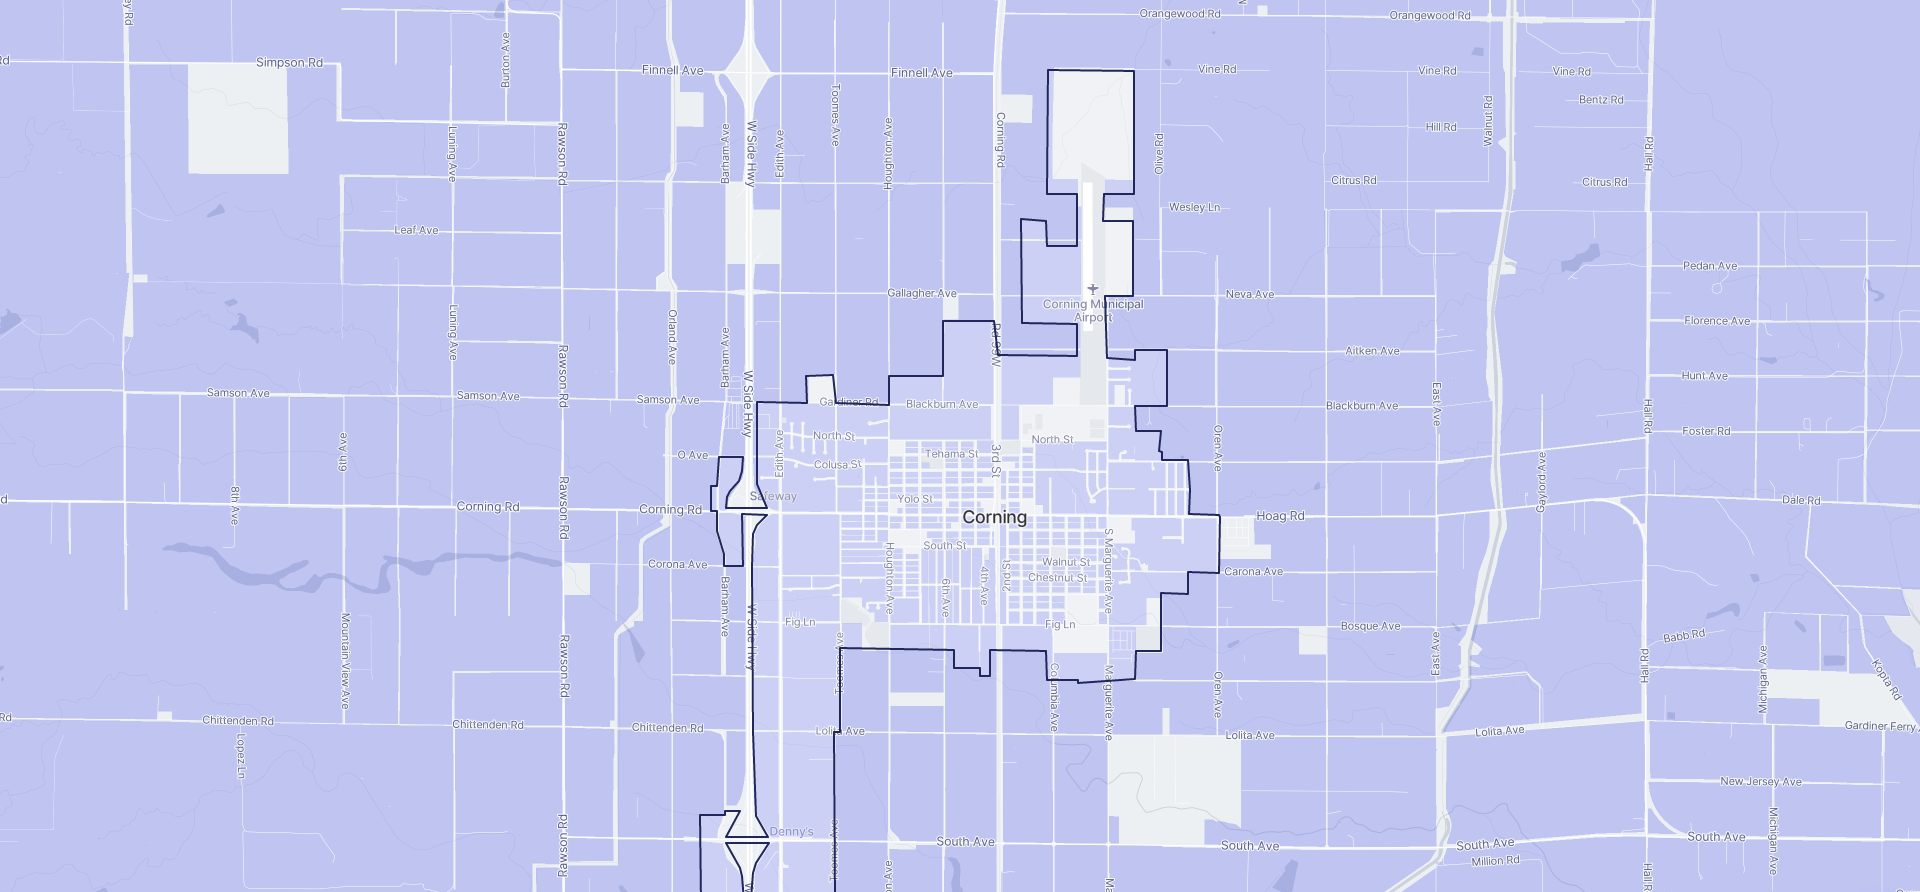 Image of Corning boundaries on a map.